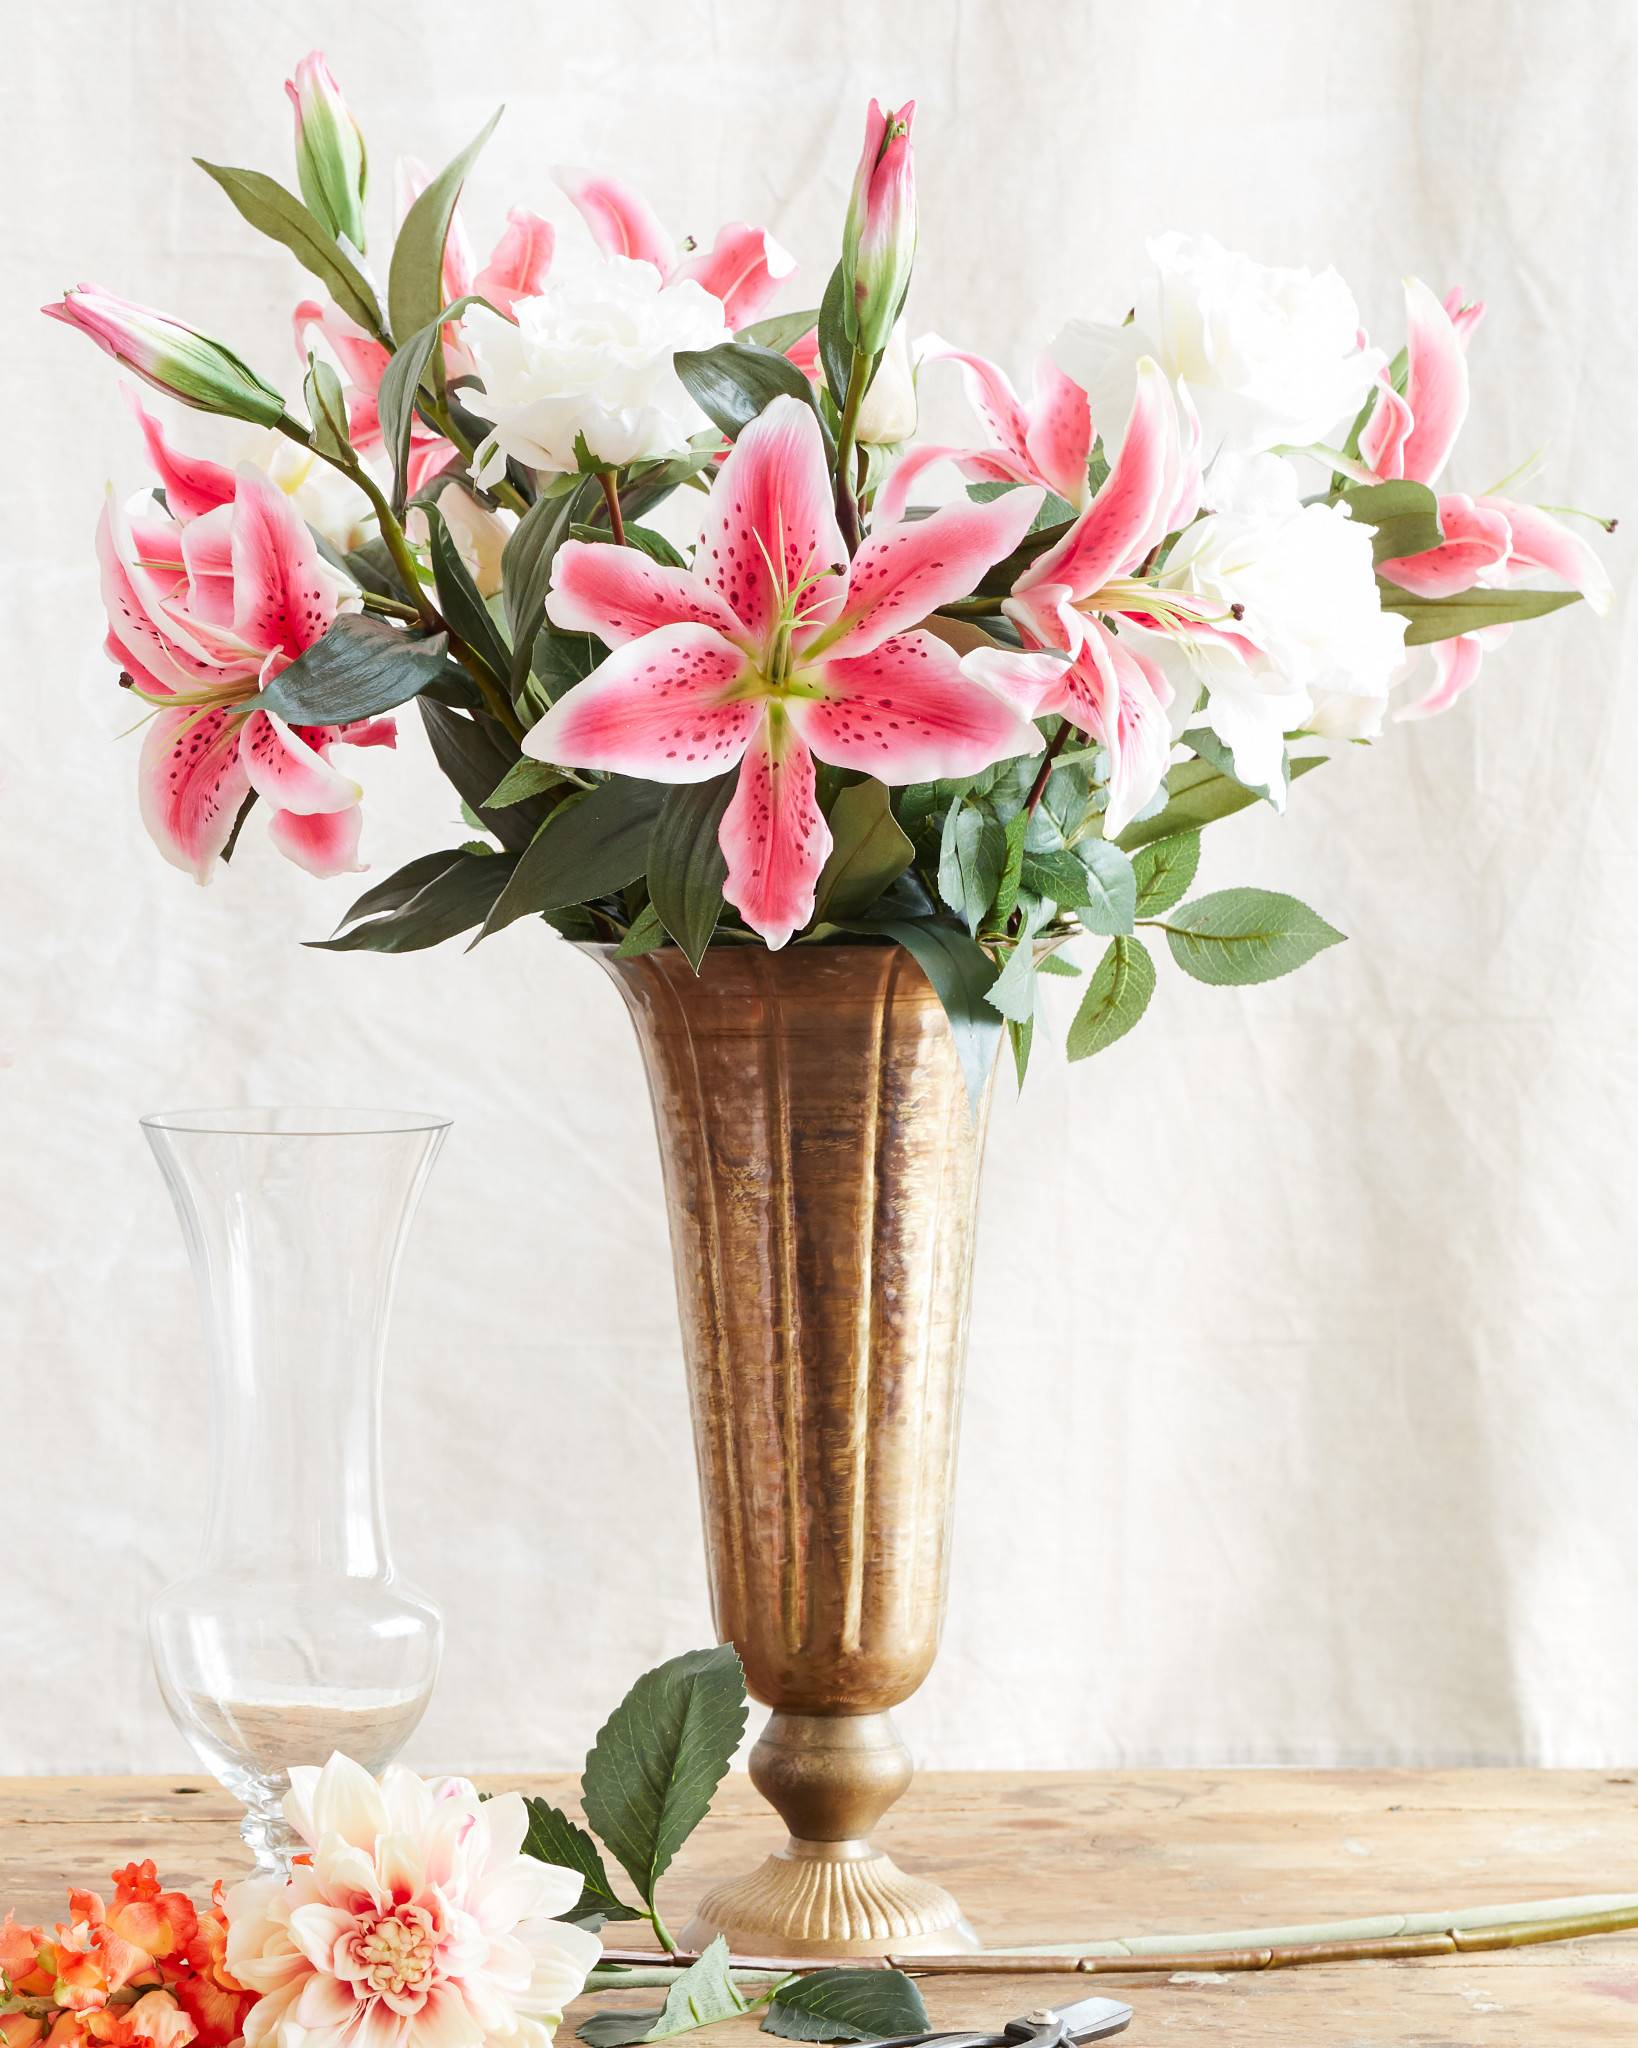 Casablanca lily flower stems balsam hill casablanca lily flower stems by balsam hill izmirmasajfo